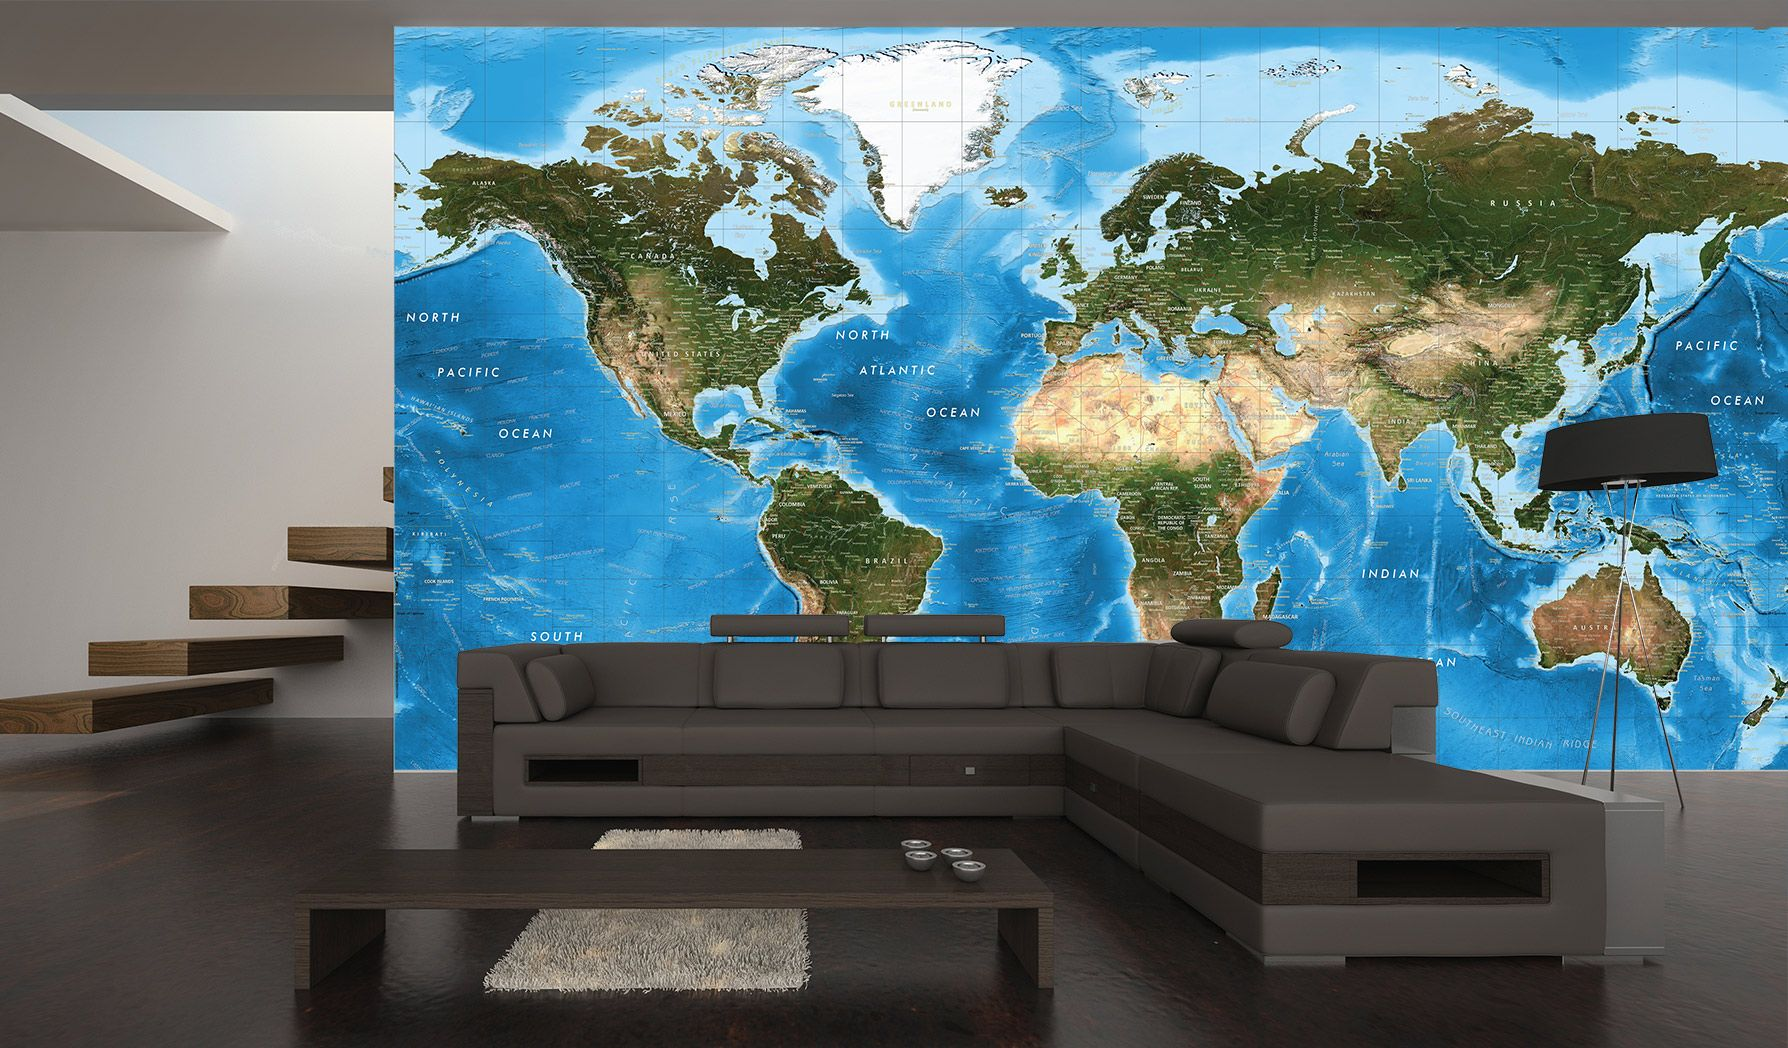 UBER MAP WALL MURAL Super Detailed World Satellite Image Map